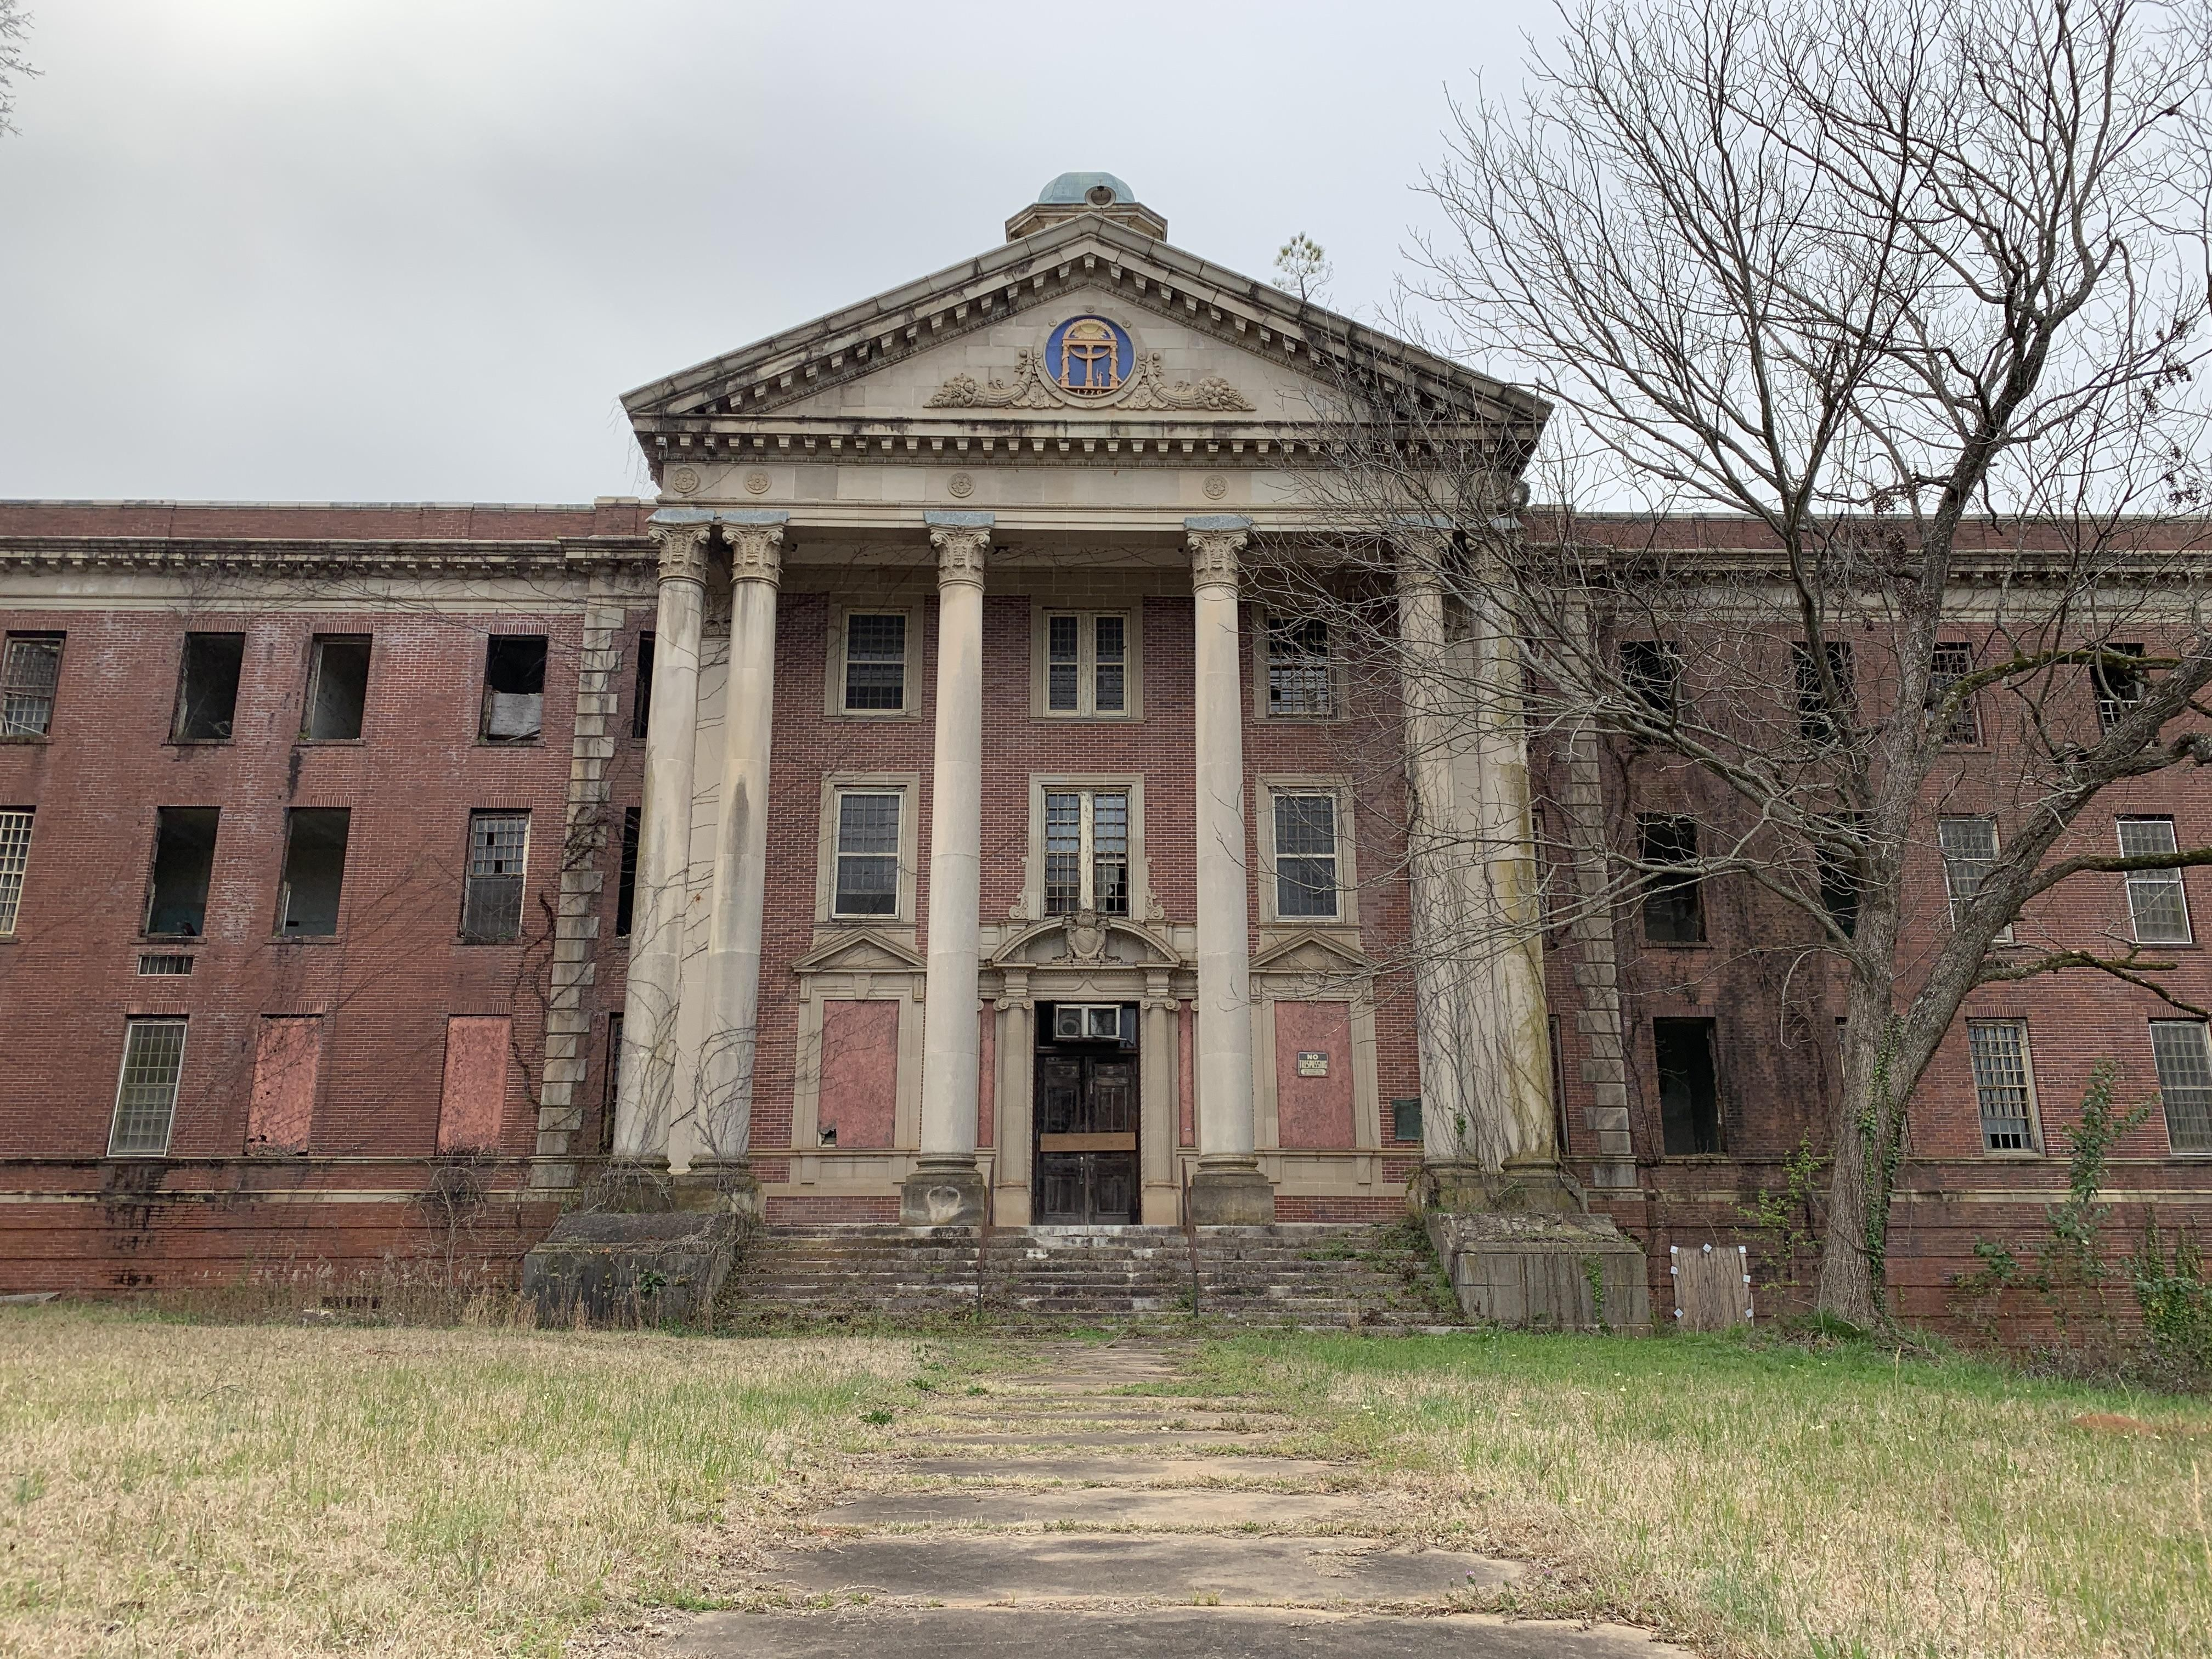 Central State Hospital Milledgeville Ga Abandoned Photography Urban Exploration Urban Explorer T Old Abandoned Houses Creepy Old Houses Abandoned Places